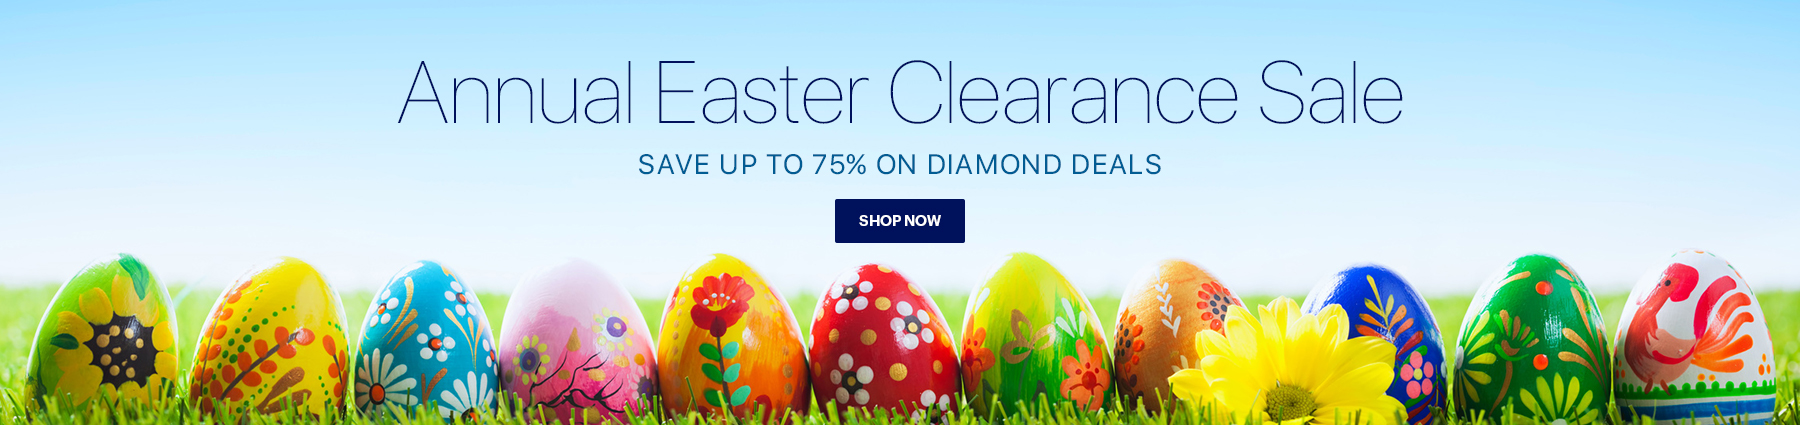 Annual Easter Clearance Sale